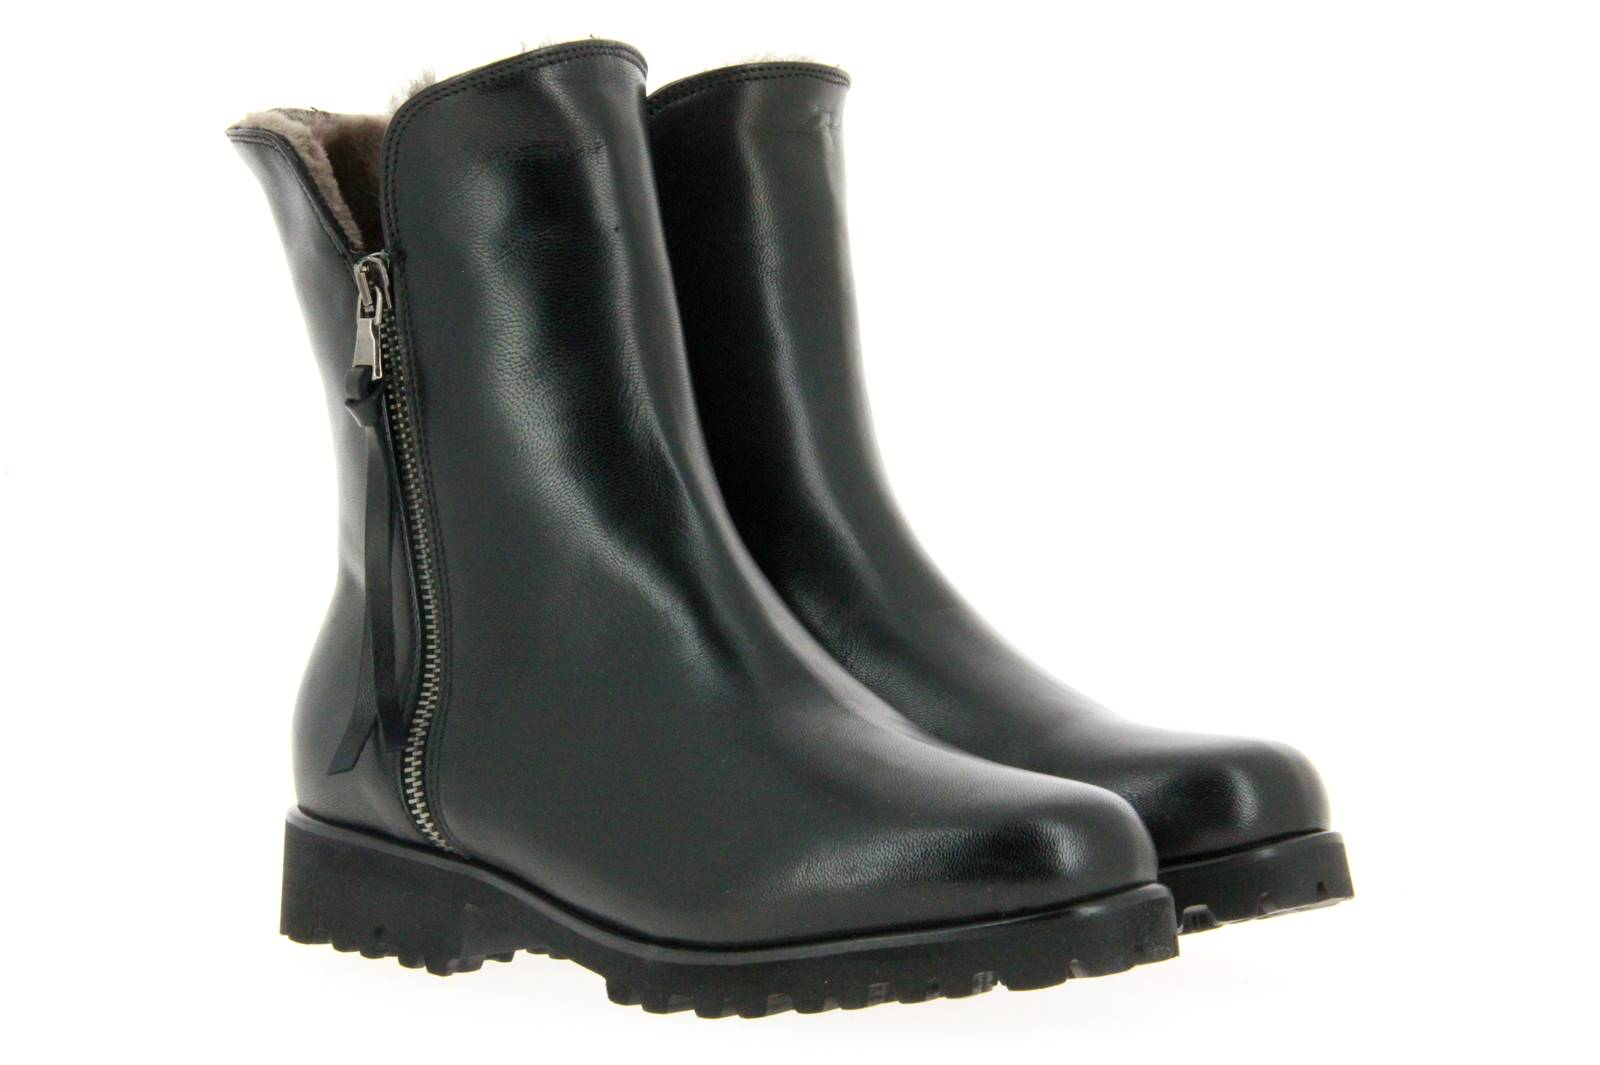 Gabriele ankle boots lined SILVIA TRONCHETT NAPLUX NERO